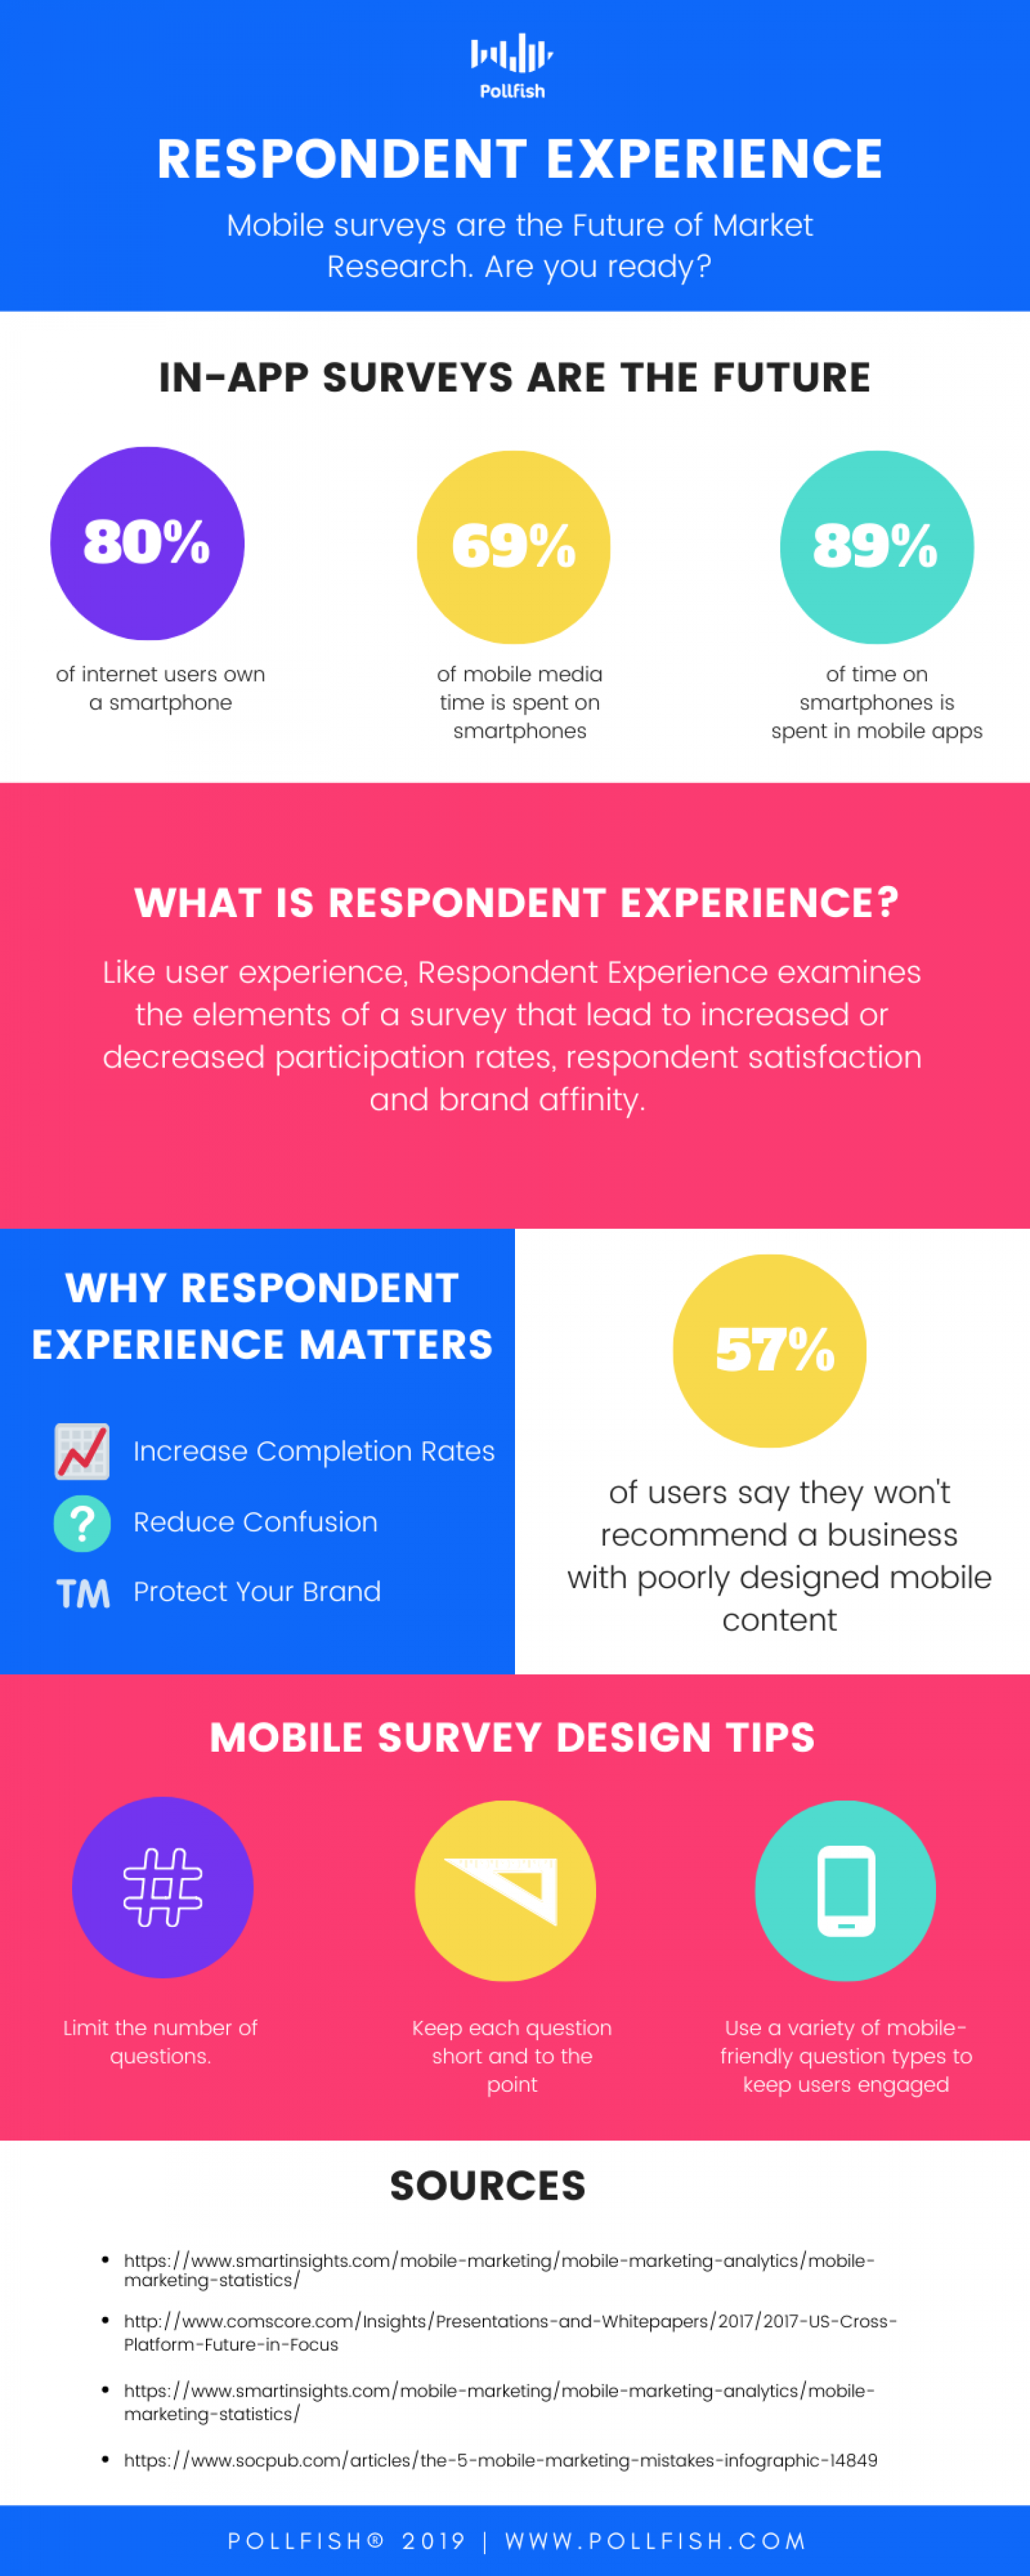 Respondent Experience Matters for Market Research Infographic